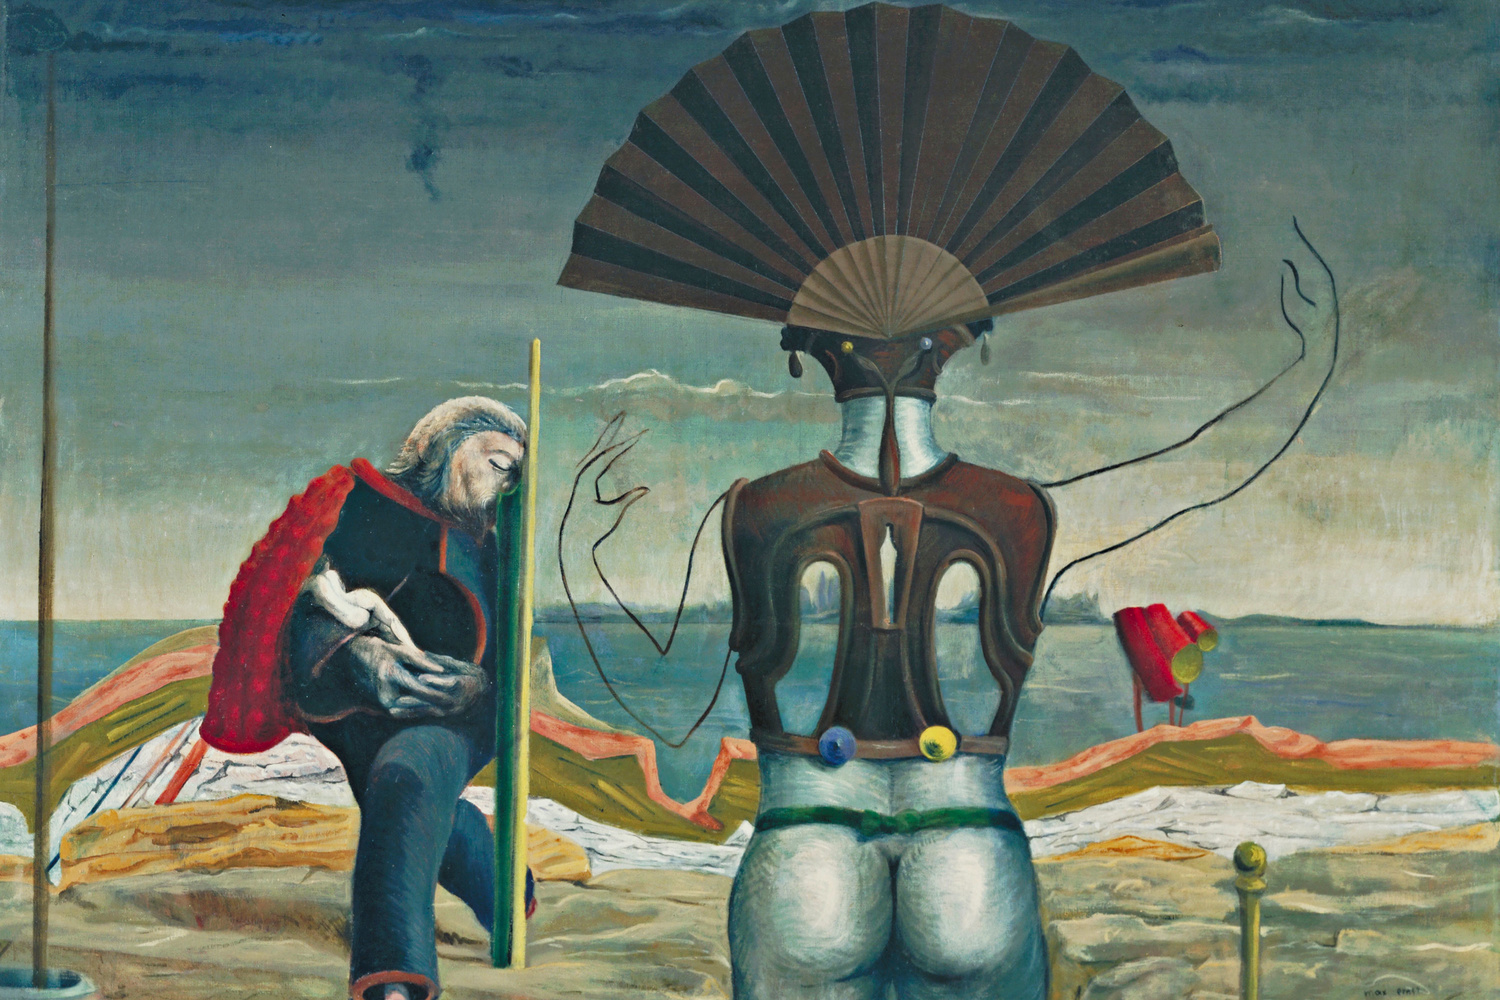 Max Ernst. Woman, Old Man, and Flower (Weib, Greis und Blume). Paris 1923, Eaubonne 1924. Oil on canvas, 38 x 51 1/4″ (96.5 x 130.2 cm). The Museum of Modern Art, New York. Purchase, 1937. Photo: Kate Keller. © 2017 Artists Rights Society (ARS), New York/ADAGP, Paris